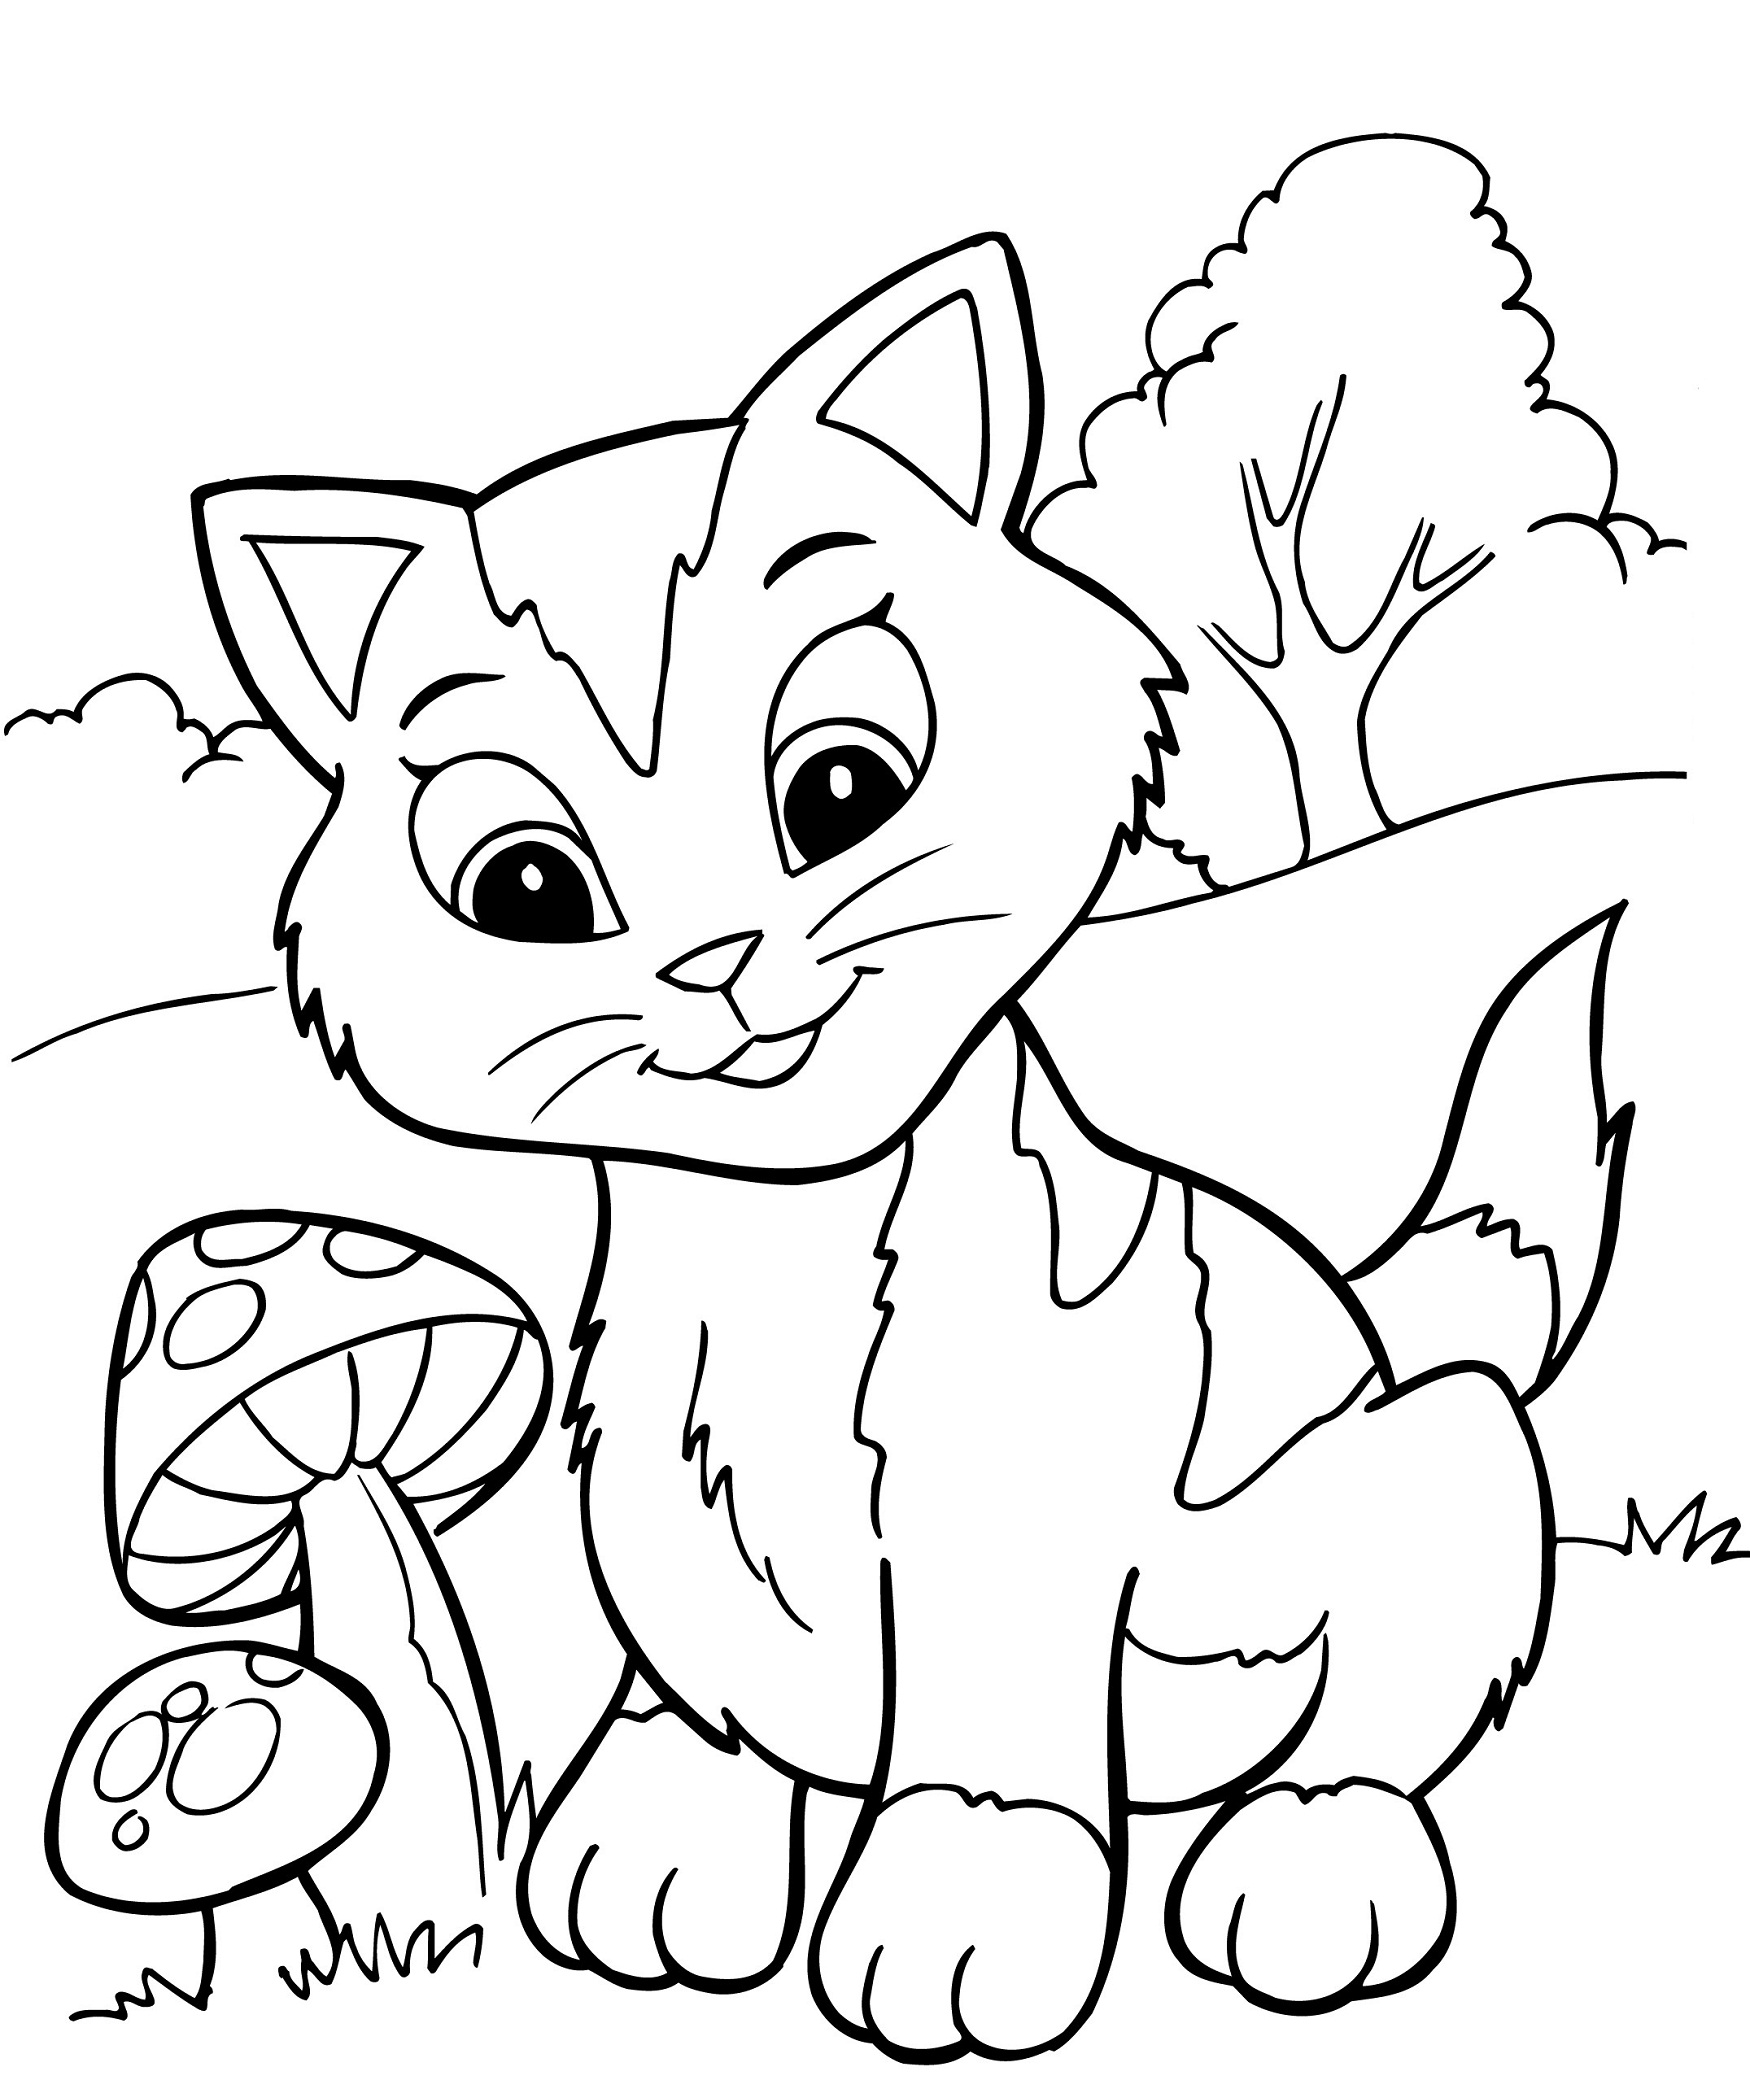 kitten coloring pictures printable kitten coloring pages best coloring pages for kids printable pictures coloring kitten